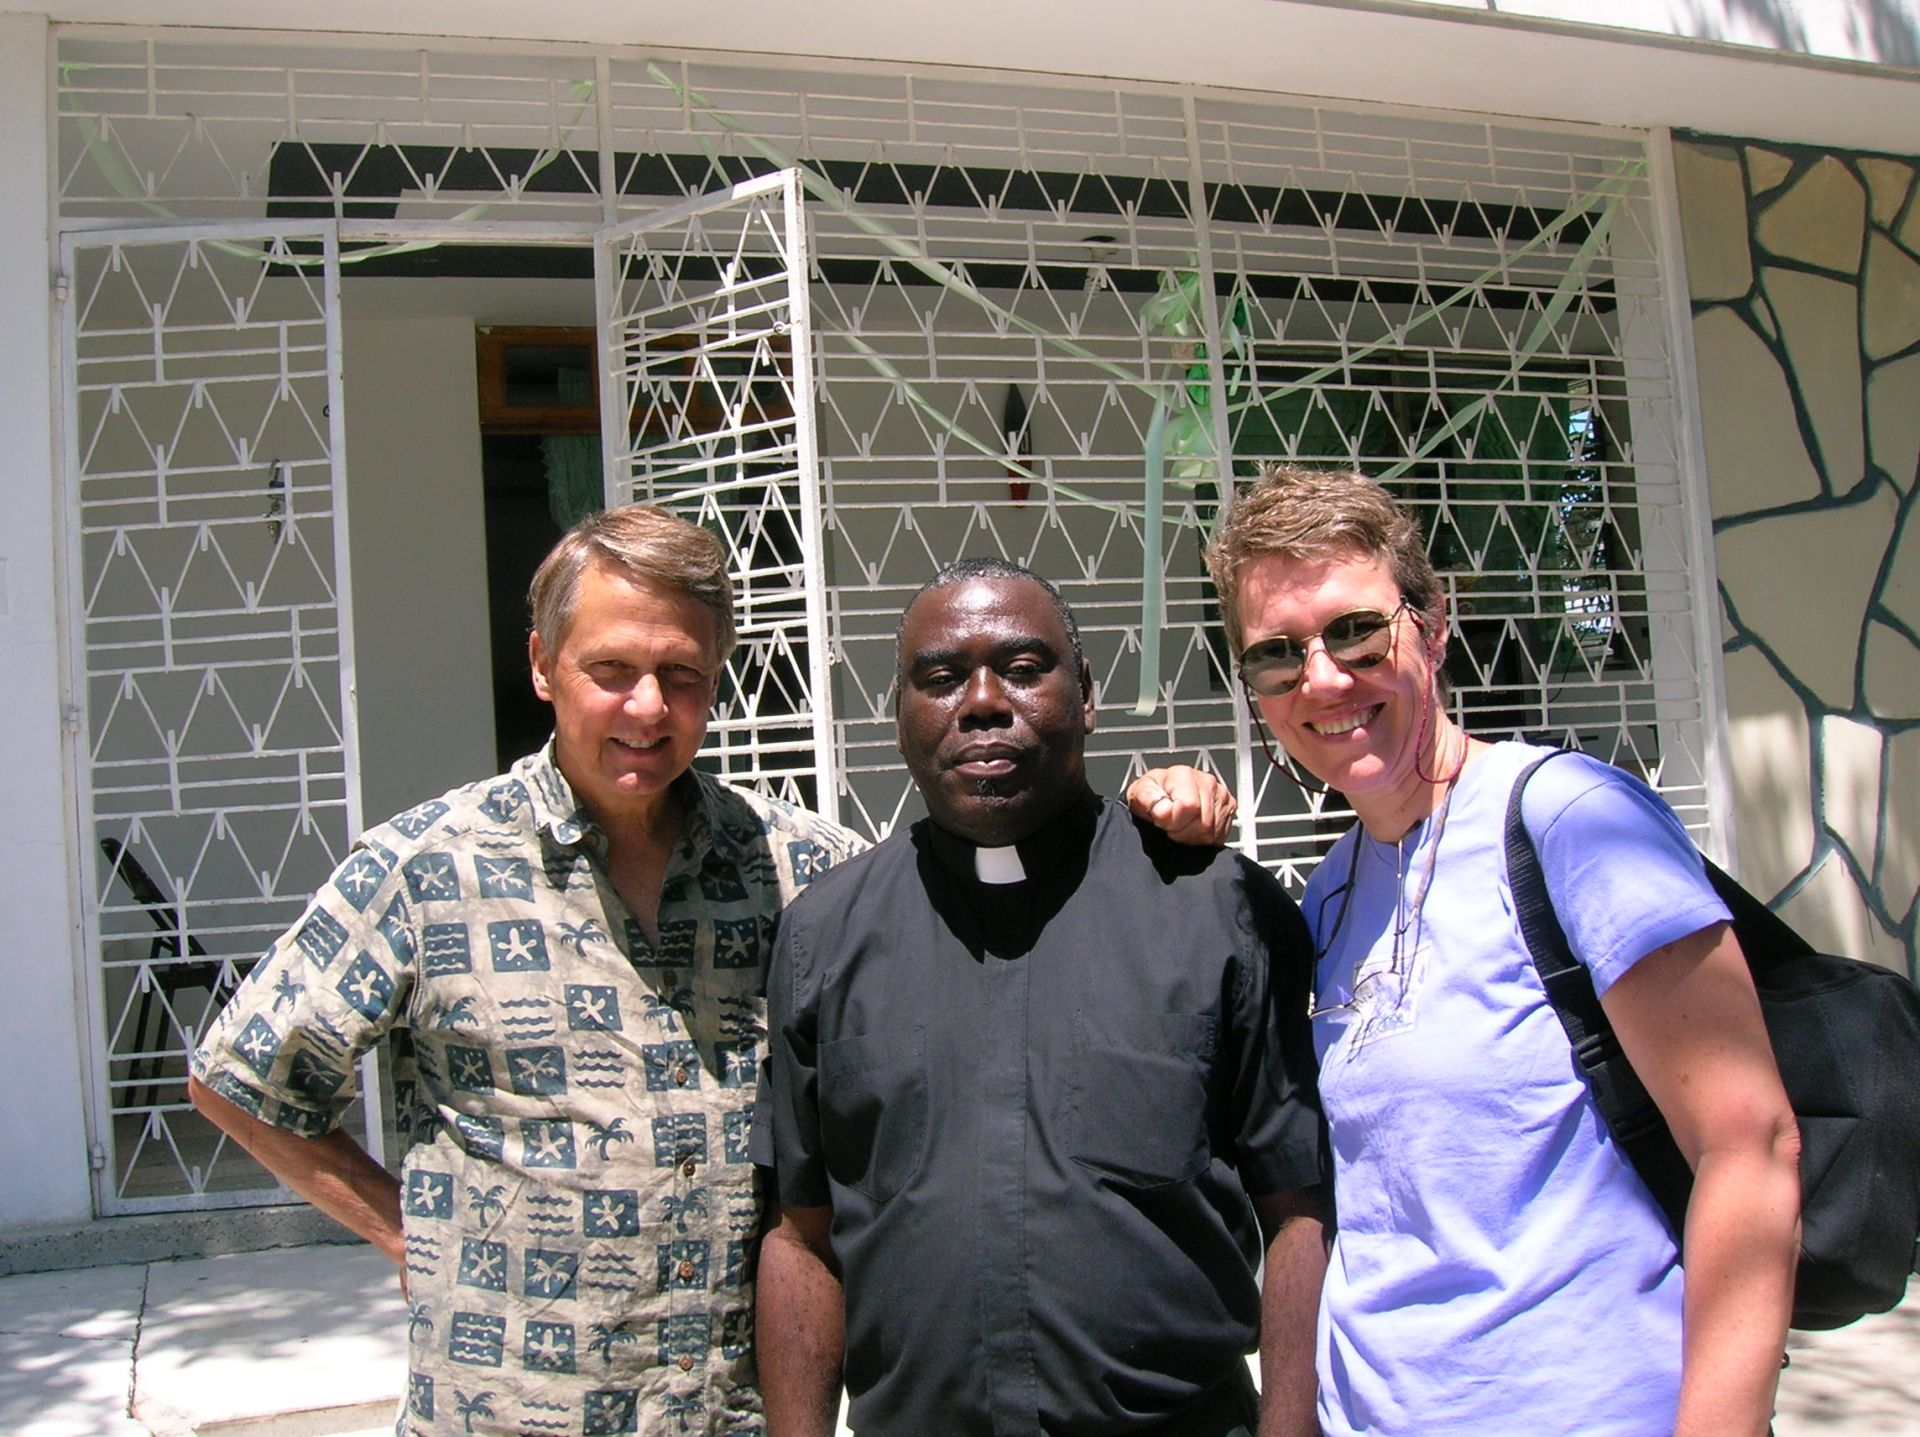 Reverend Roger Bowen, Pere Jeannot, and Serena Beeks were our guides and host during our stay in Haiti.